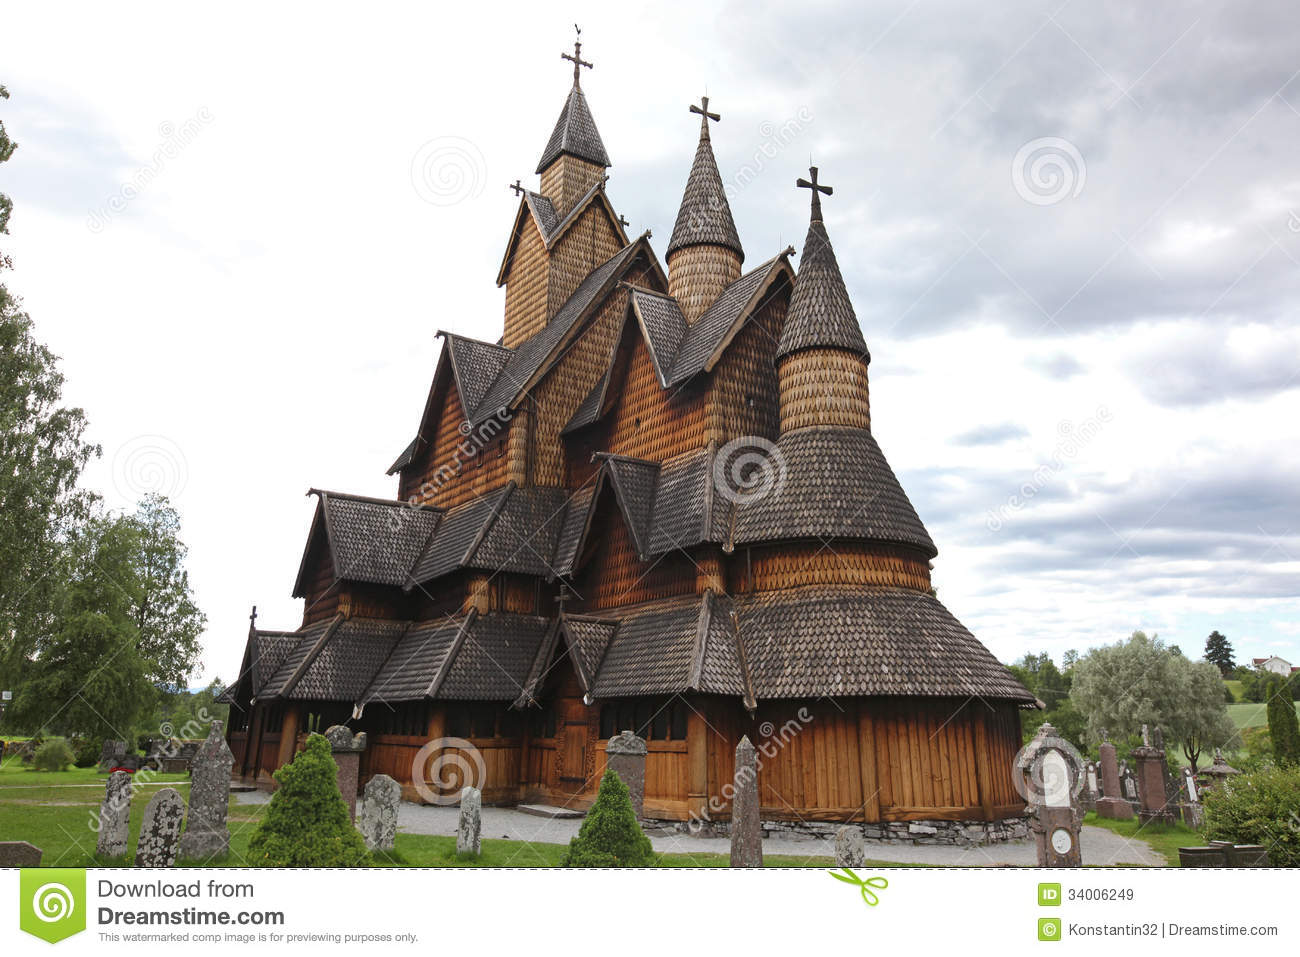 Heddal Stavkirke In Norway Royalty Free Stock Images - Image: 34006249